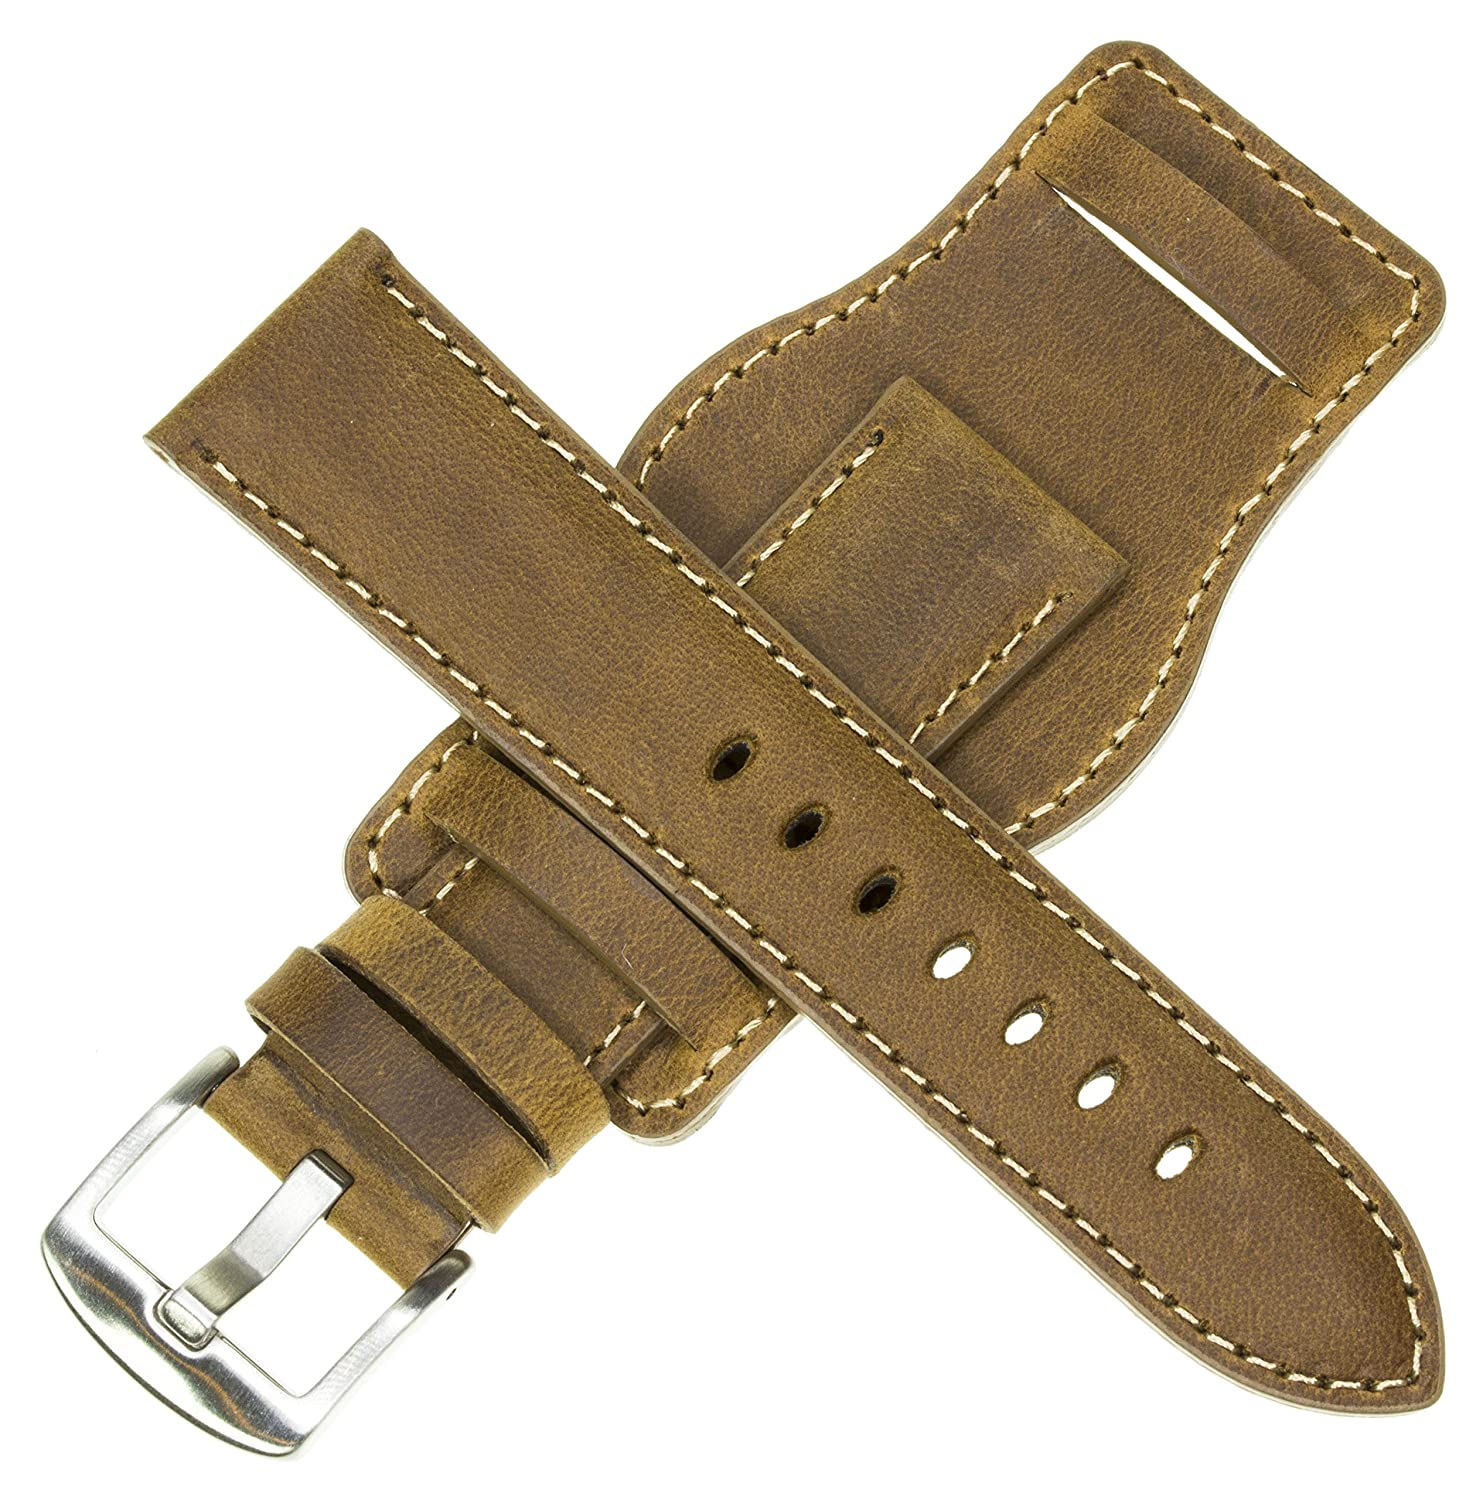 22mm German Military Aviator Watch Strap Swiss Army Brown Leather Cuff Watch Band Brown 22 mm Bund X1